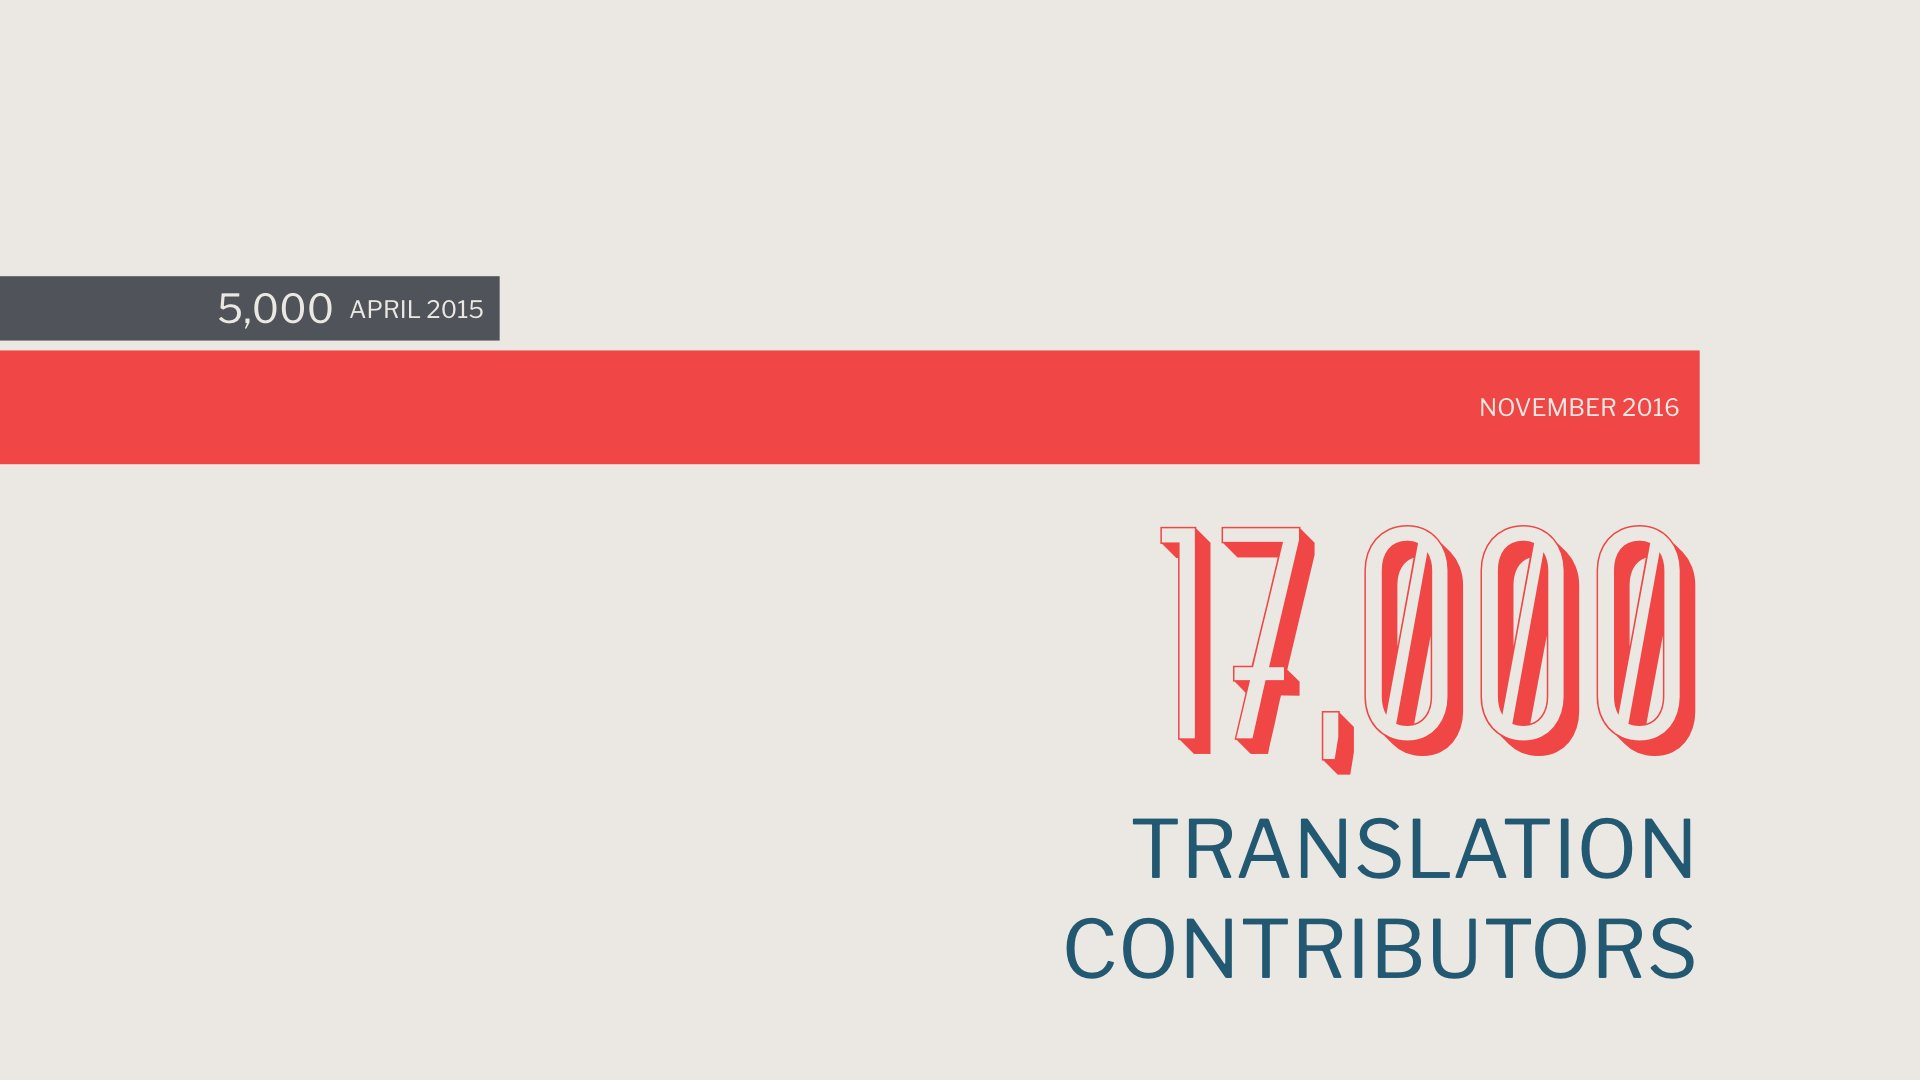 Let's talk internationalization efforts - as of November 2016, there are 17,000 translation contributors. #wcus https://t.co/zjpJhWXtG9